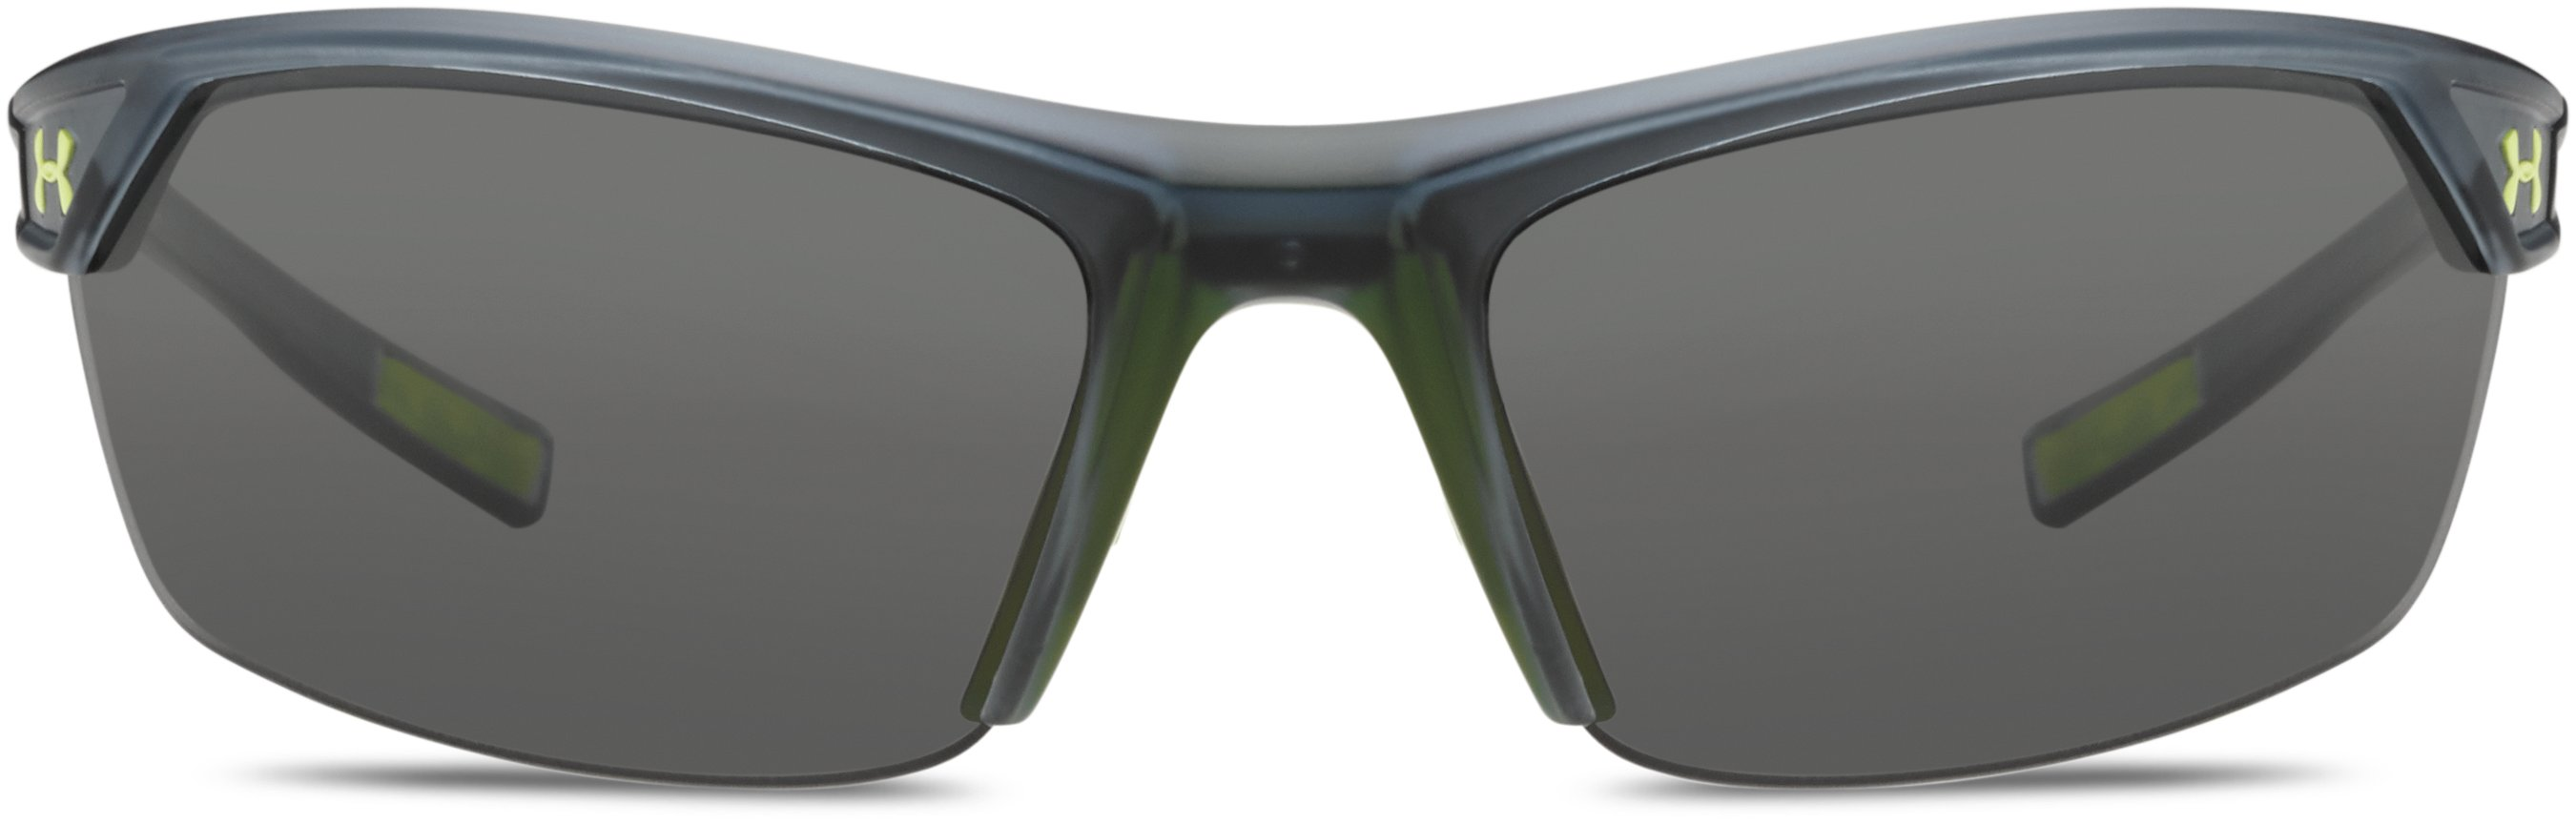 UA Zone 2.0 Multiflection™ Sunglasses, SATIN CRYSTAL GRAY